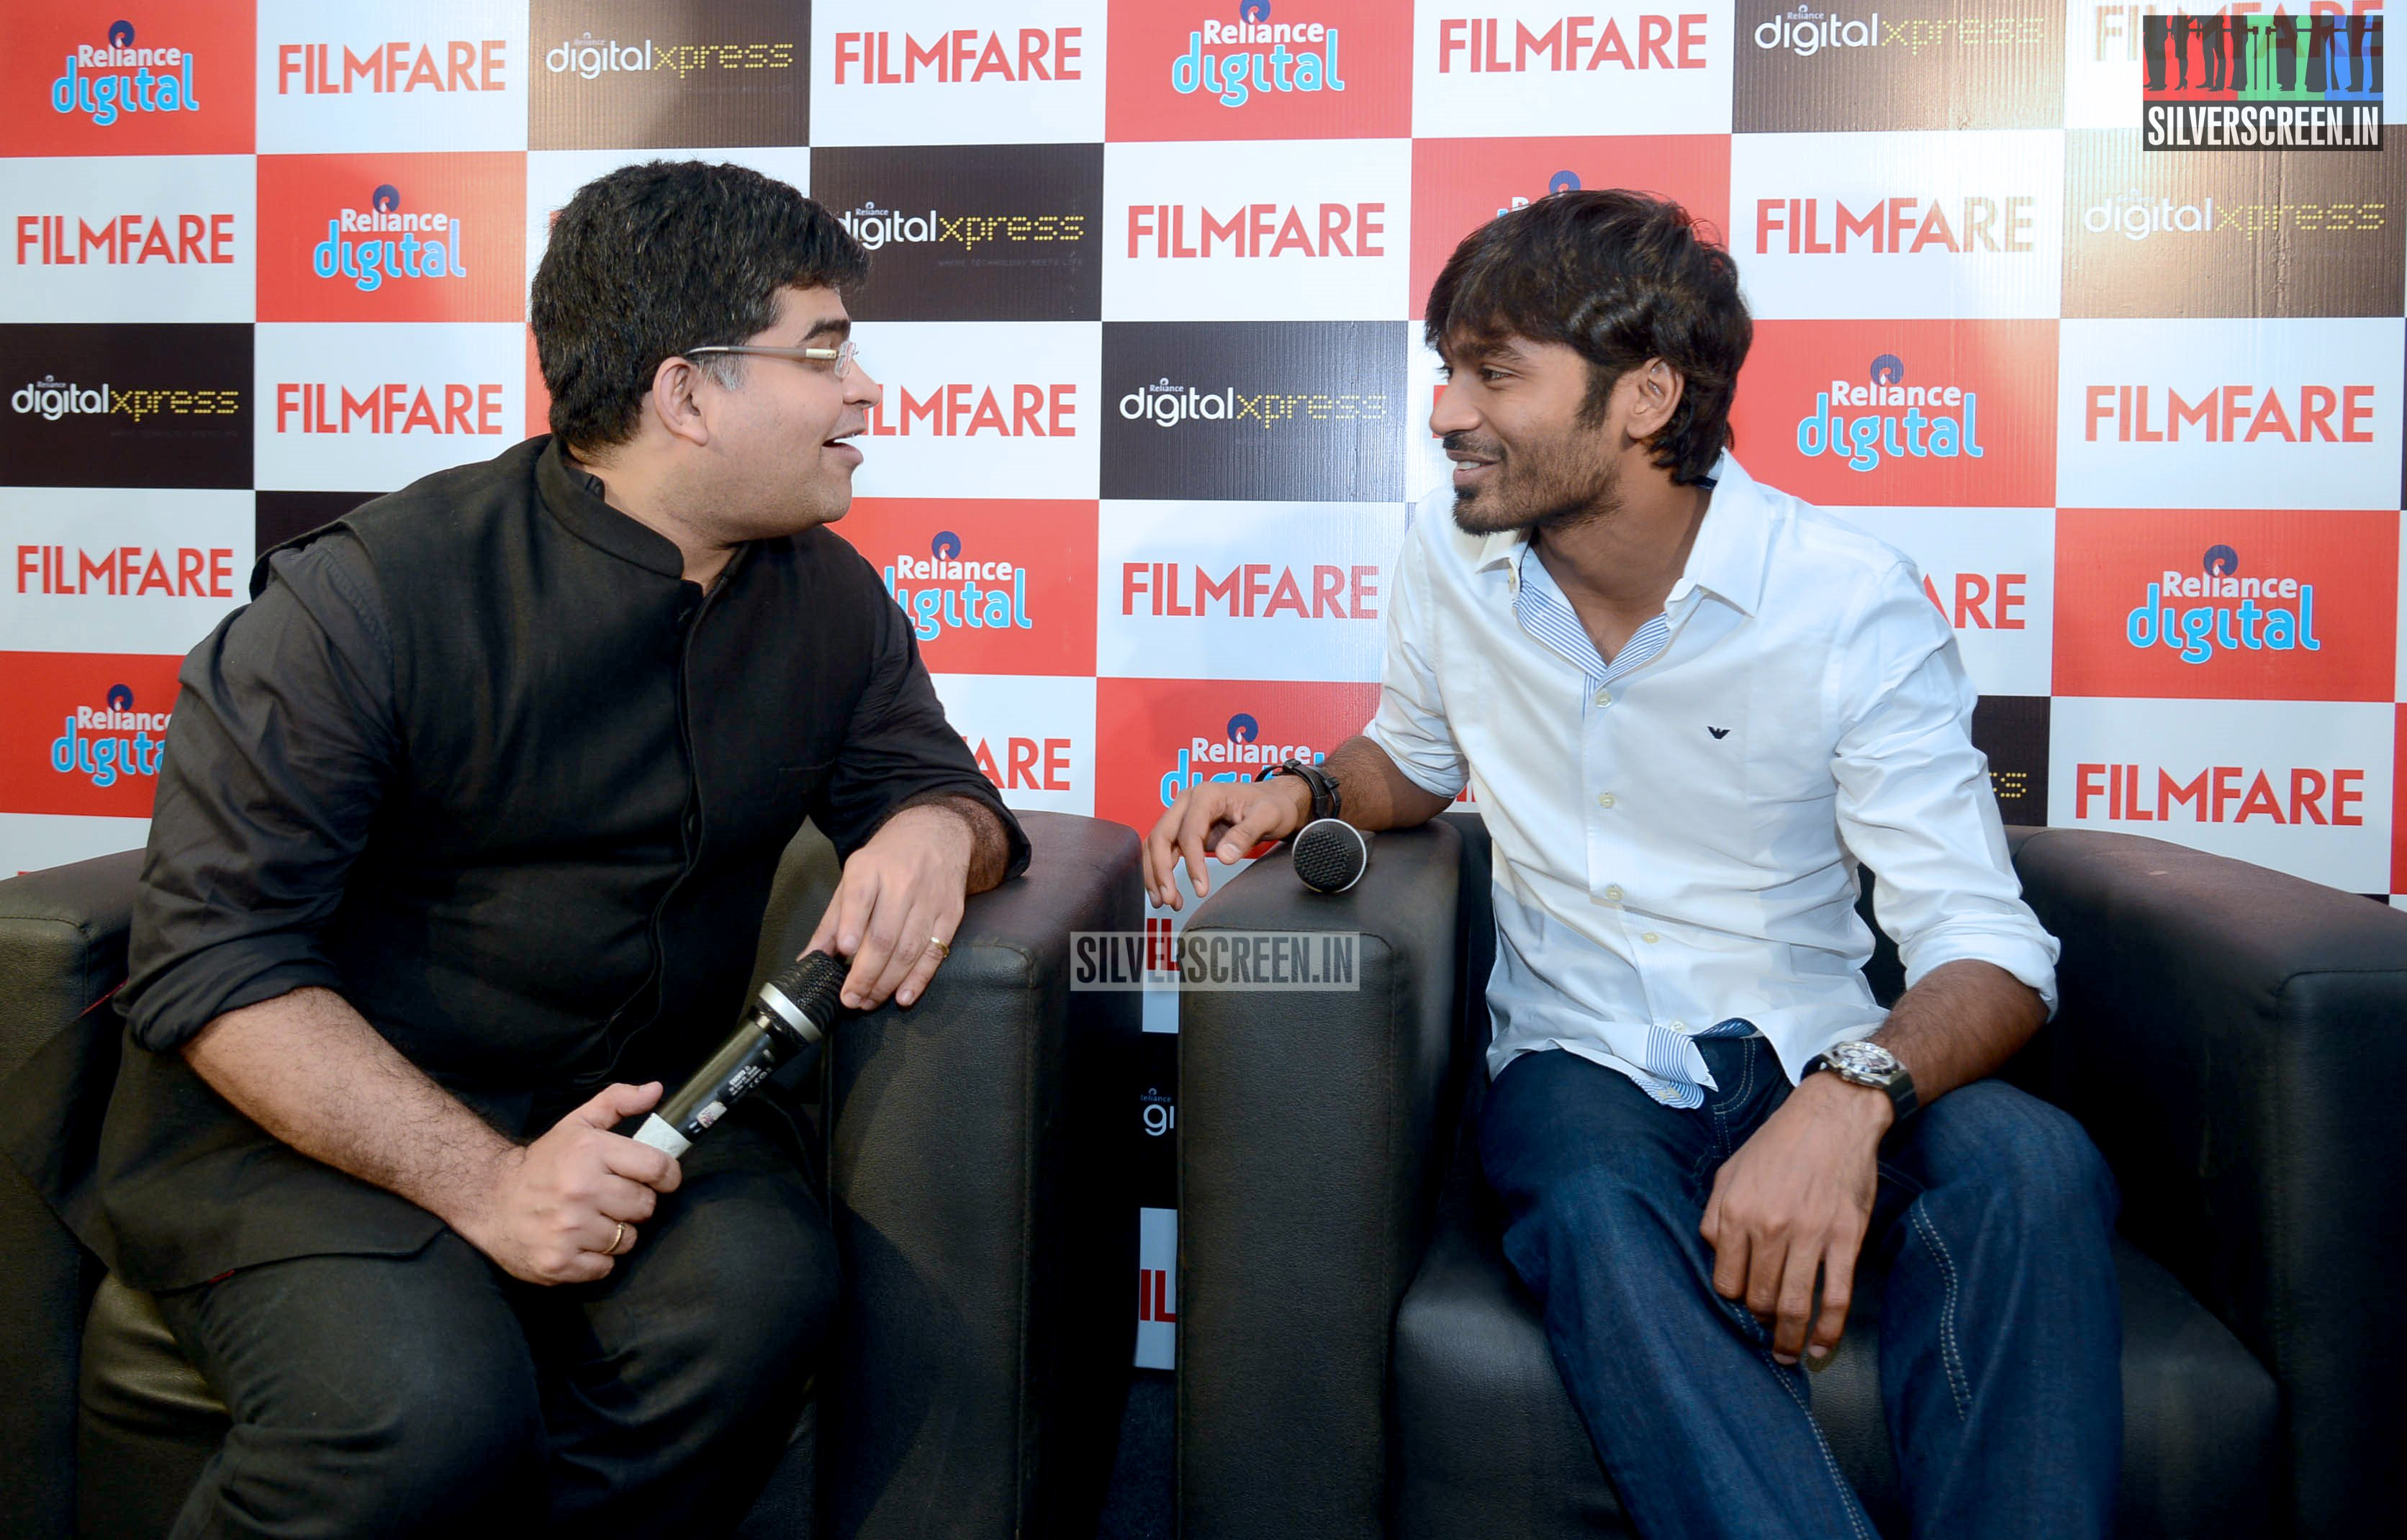 dhanush at the filmfare meet and greet stills. Black Bedroom Furniture Sets. Home Design Ideas